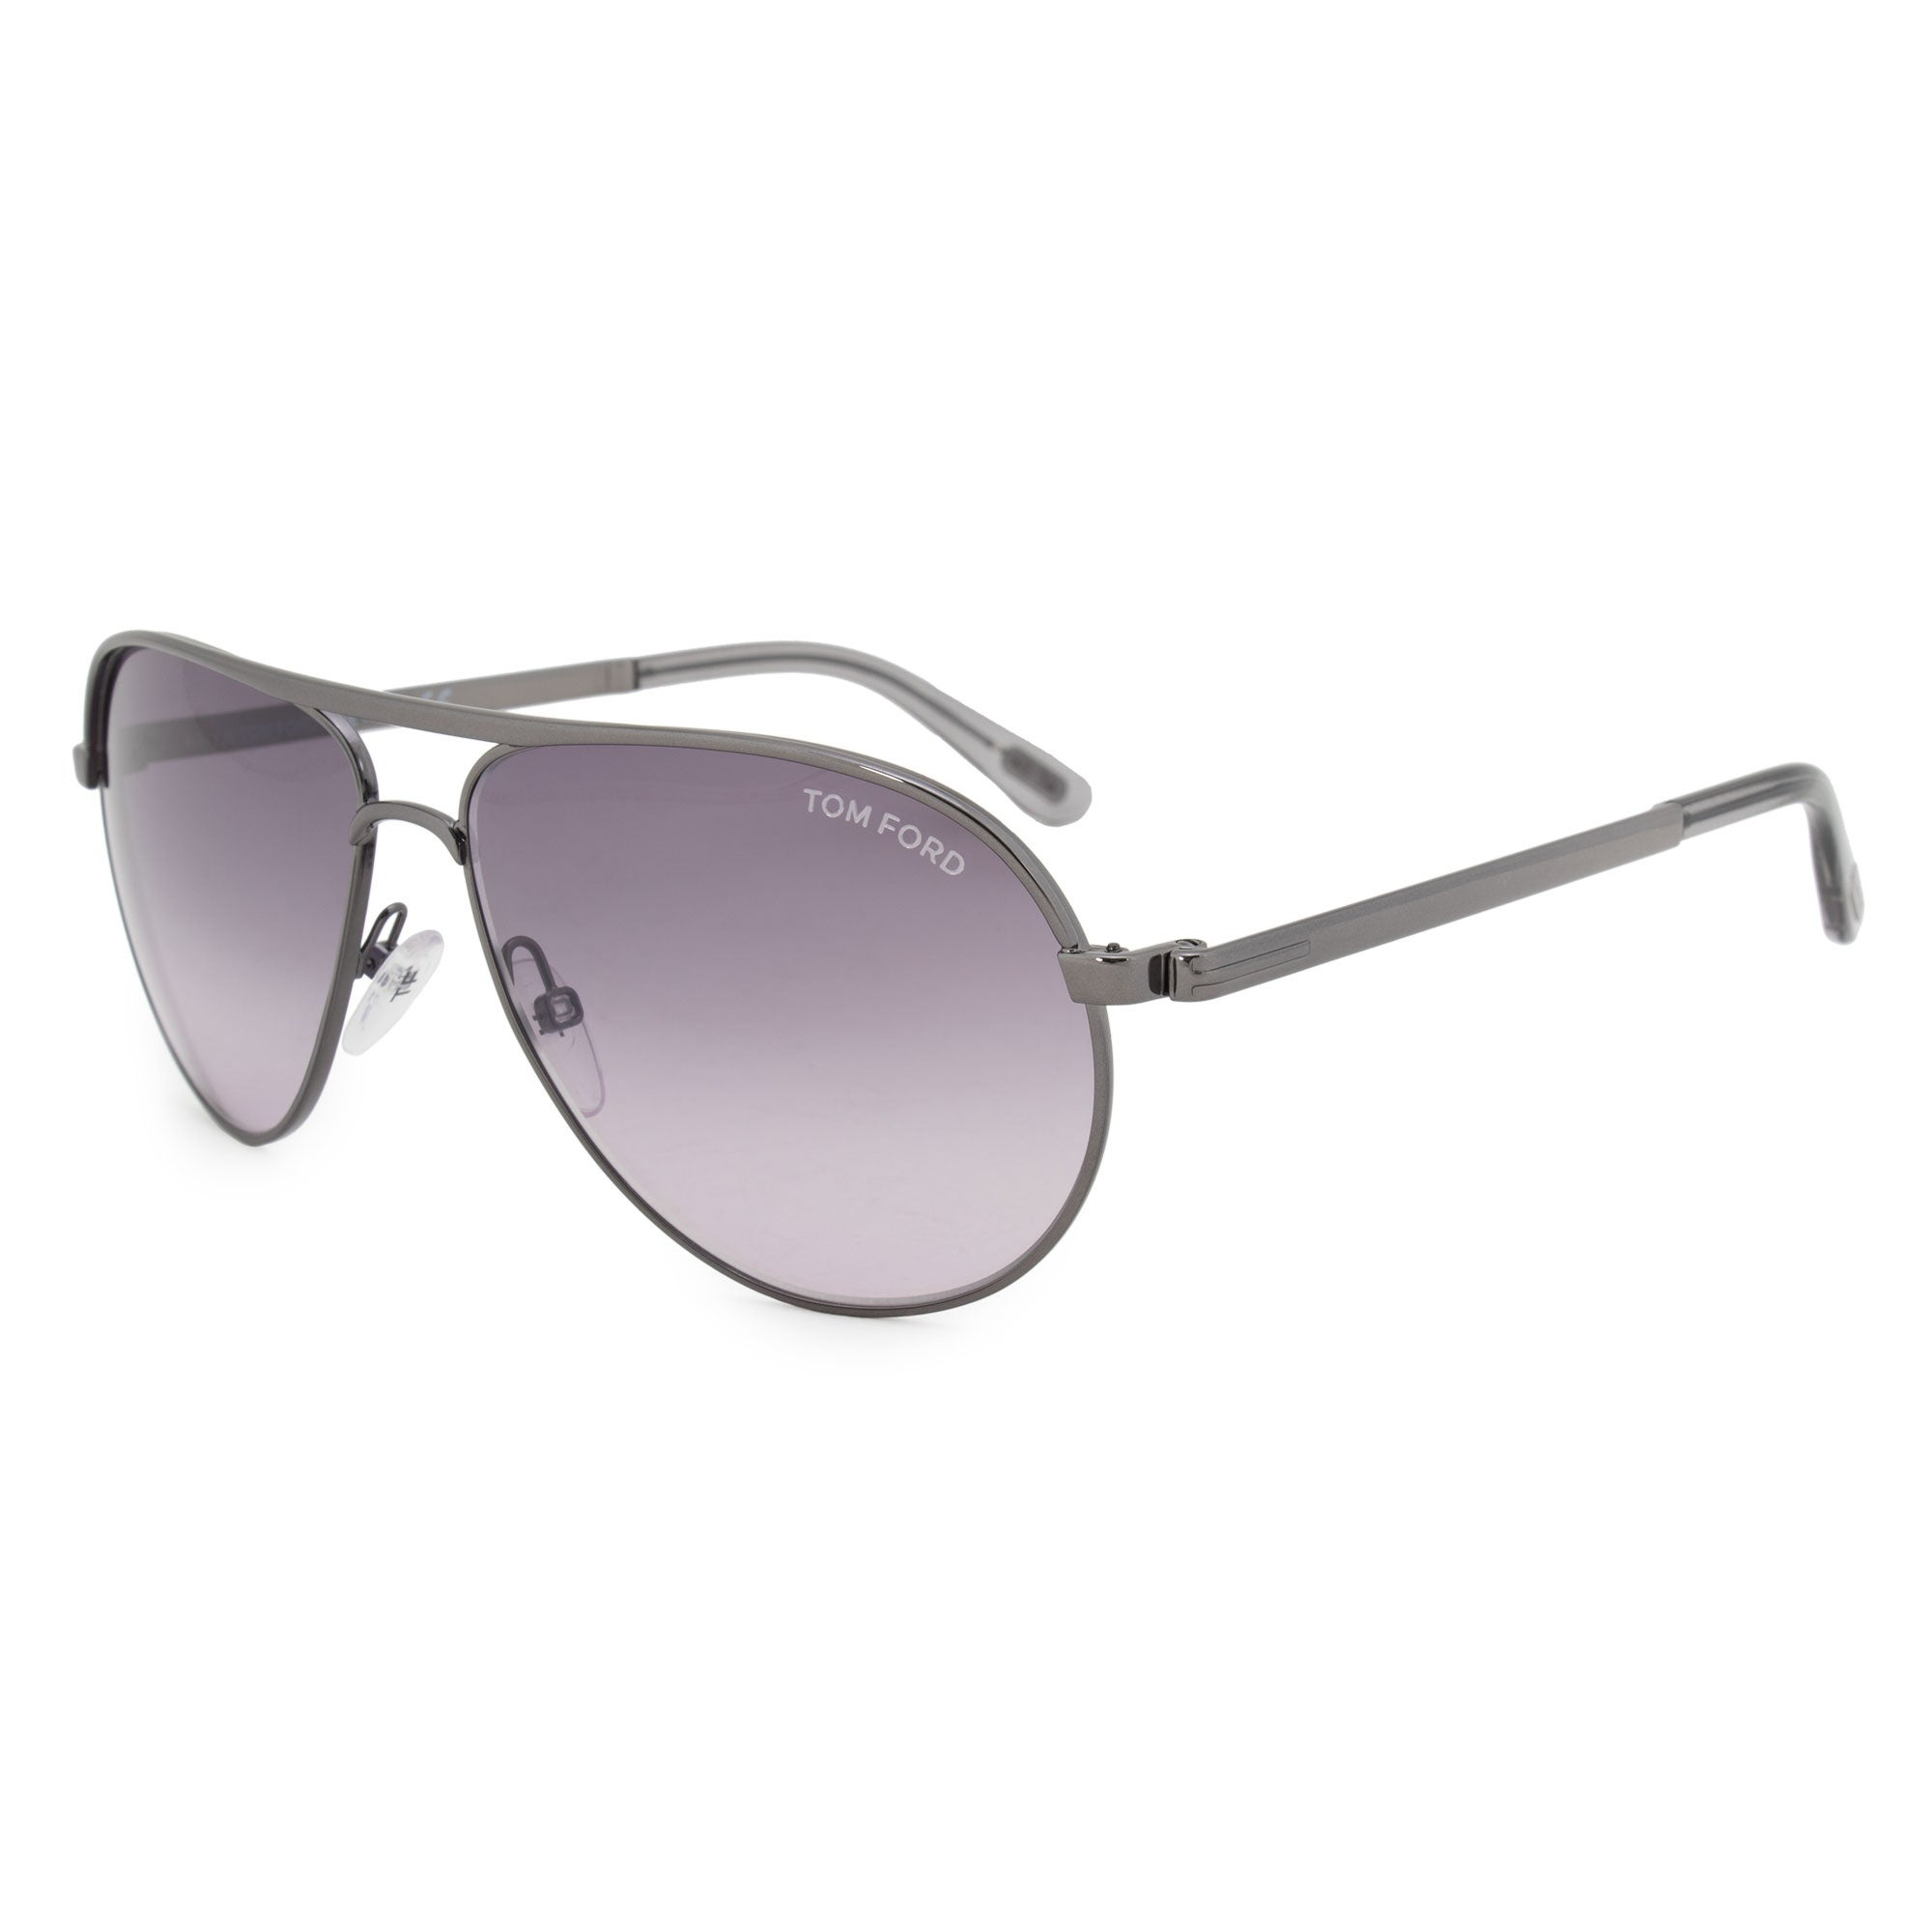 7450253e418 Shop Tom Ford Marko Aviator Sunglasses FT0144 08B 58 - Free Shipping Today  - Overstock - 23138853